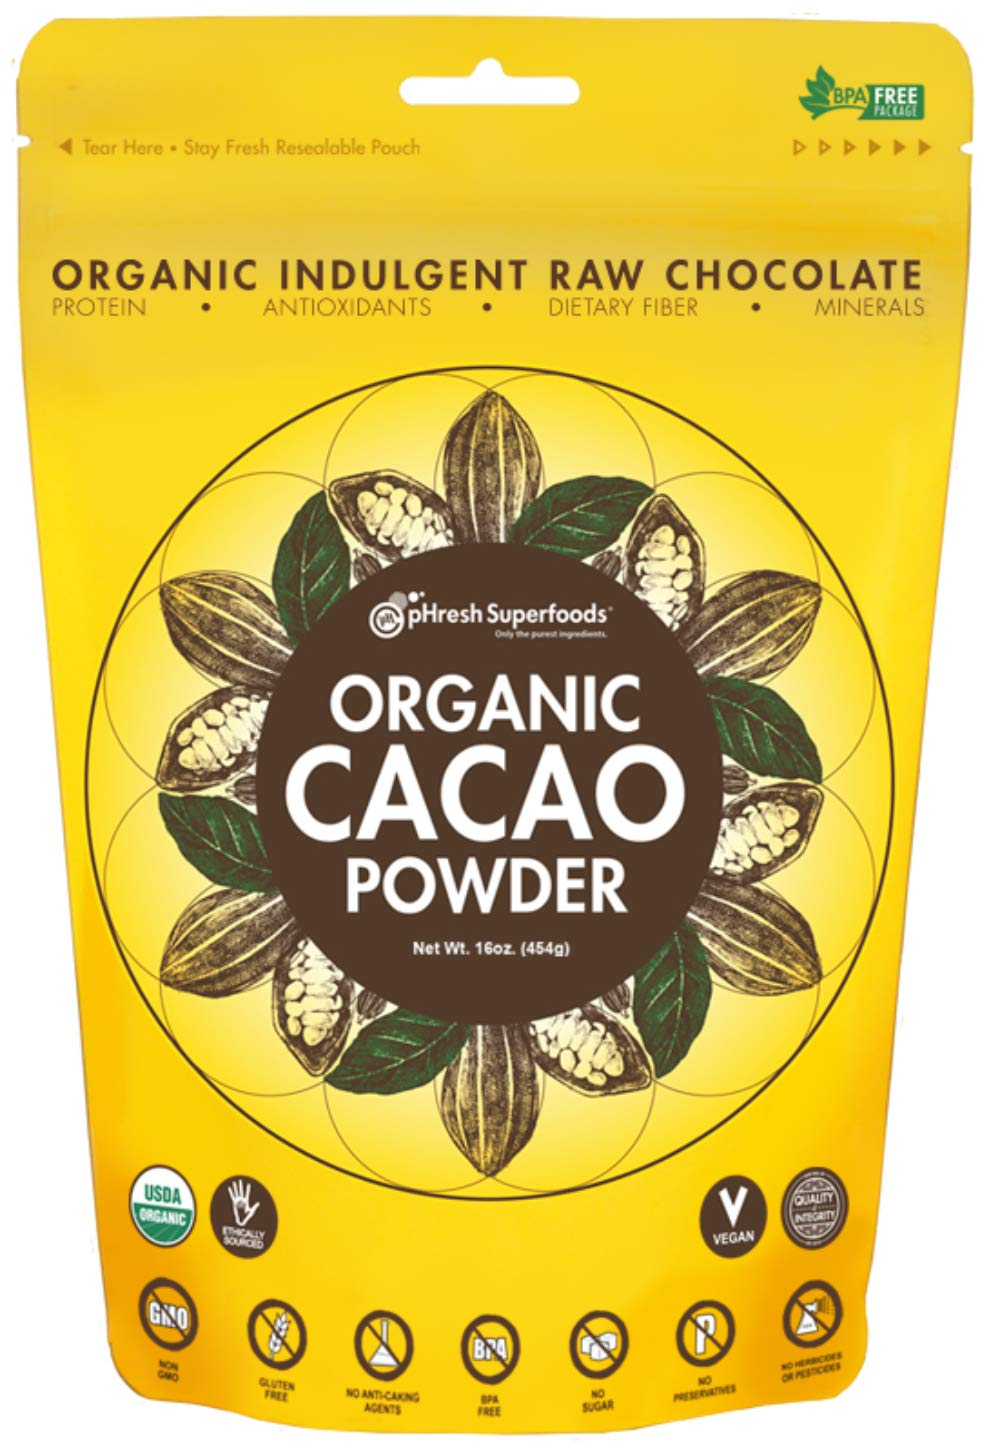 A bag of Organic Raw Cocoa Powder pHresh Superfoods